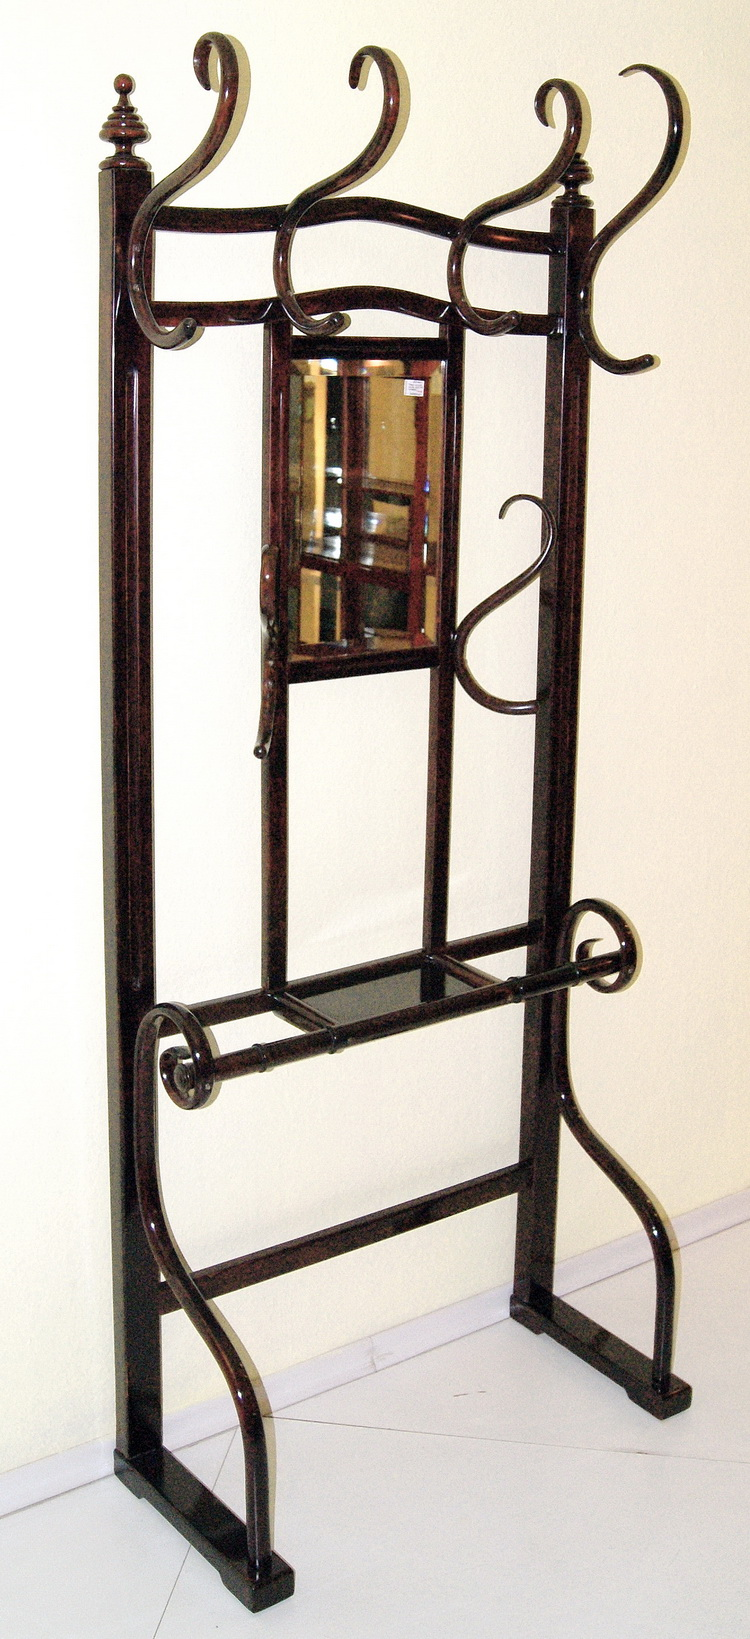 kohn jugendstil wand garderobe thonet art nouveau coat. Black Bedroom Furniture Sets. Home Design Ideas